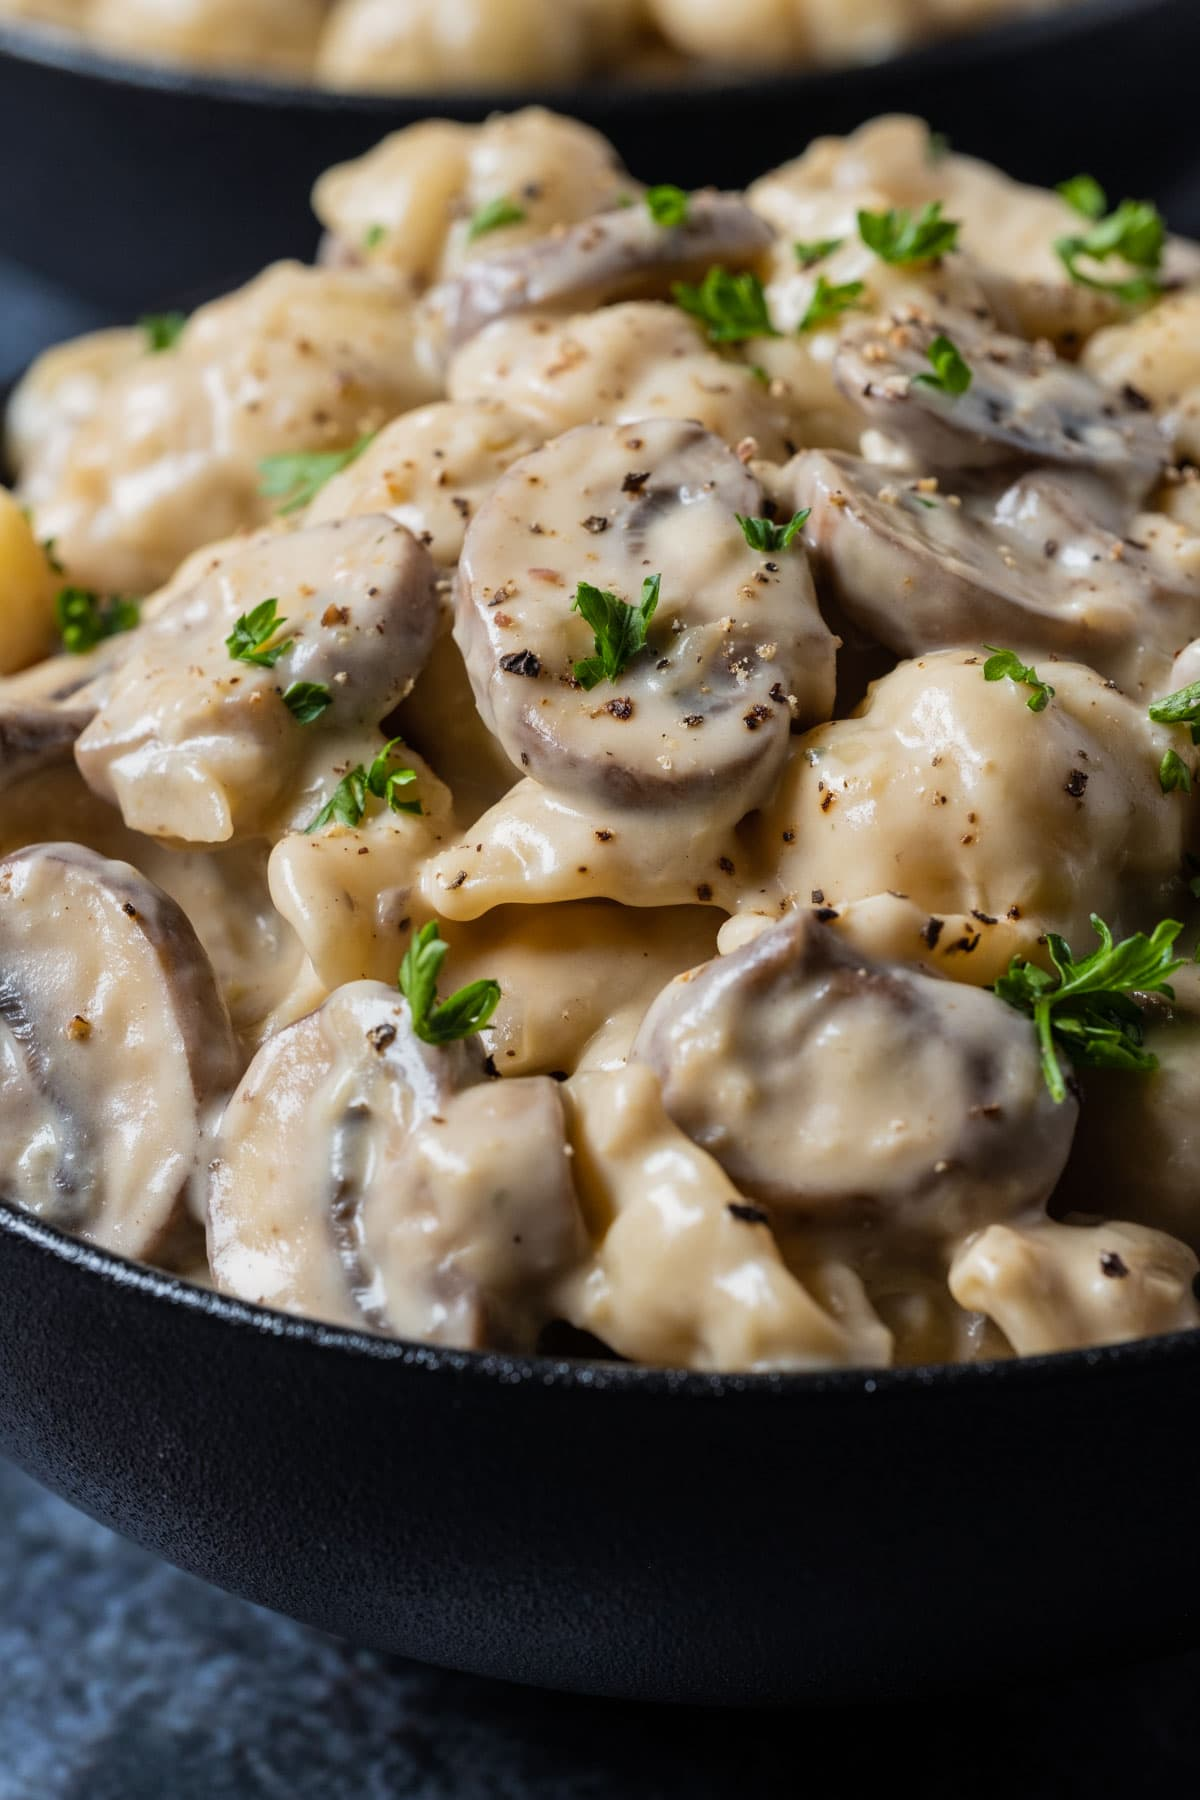 Vegetarian stroganoff topped with fresh chopped parsley in a black bowl.